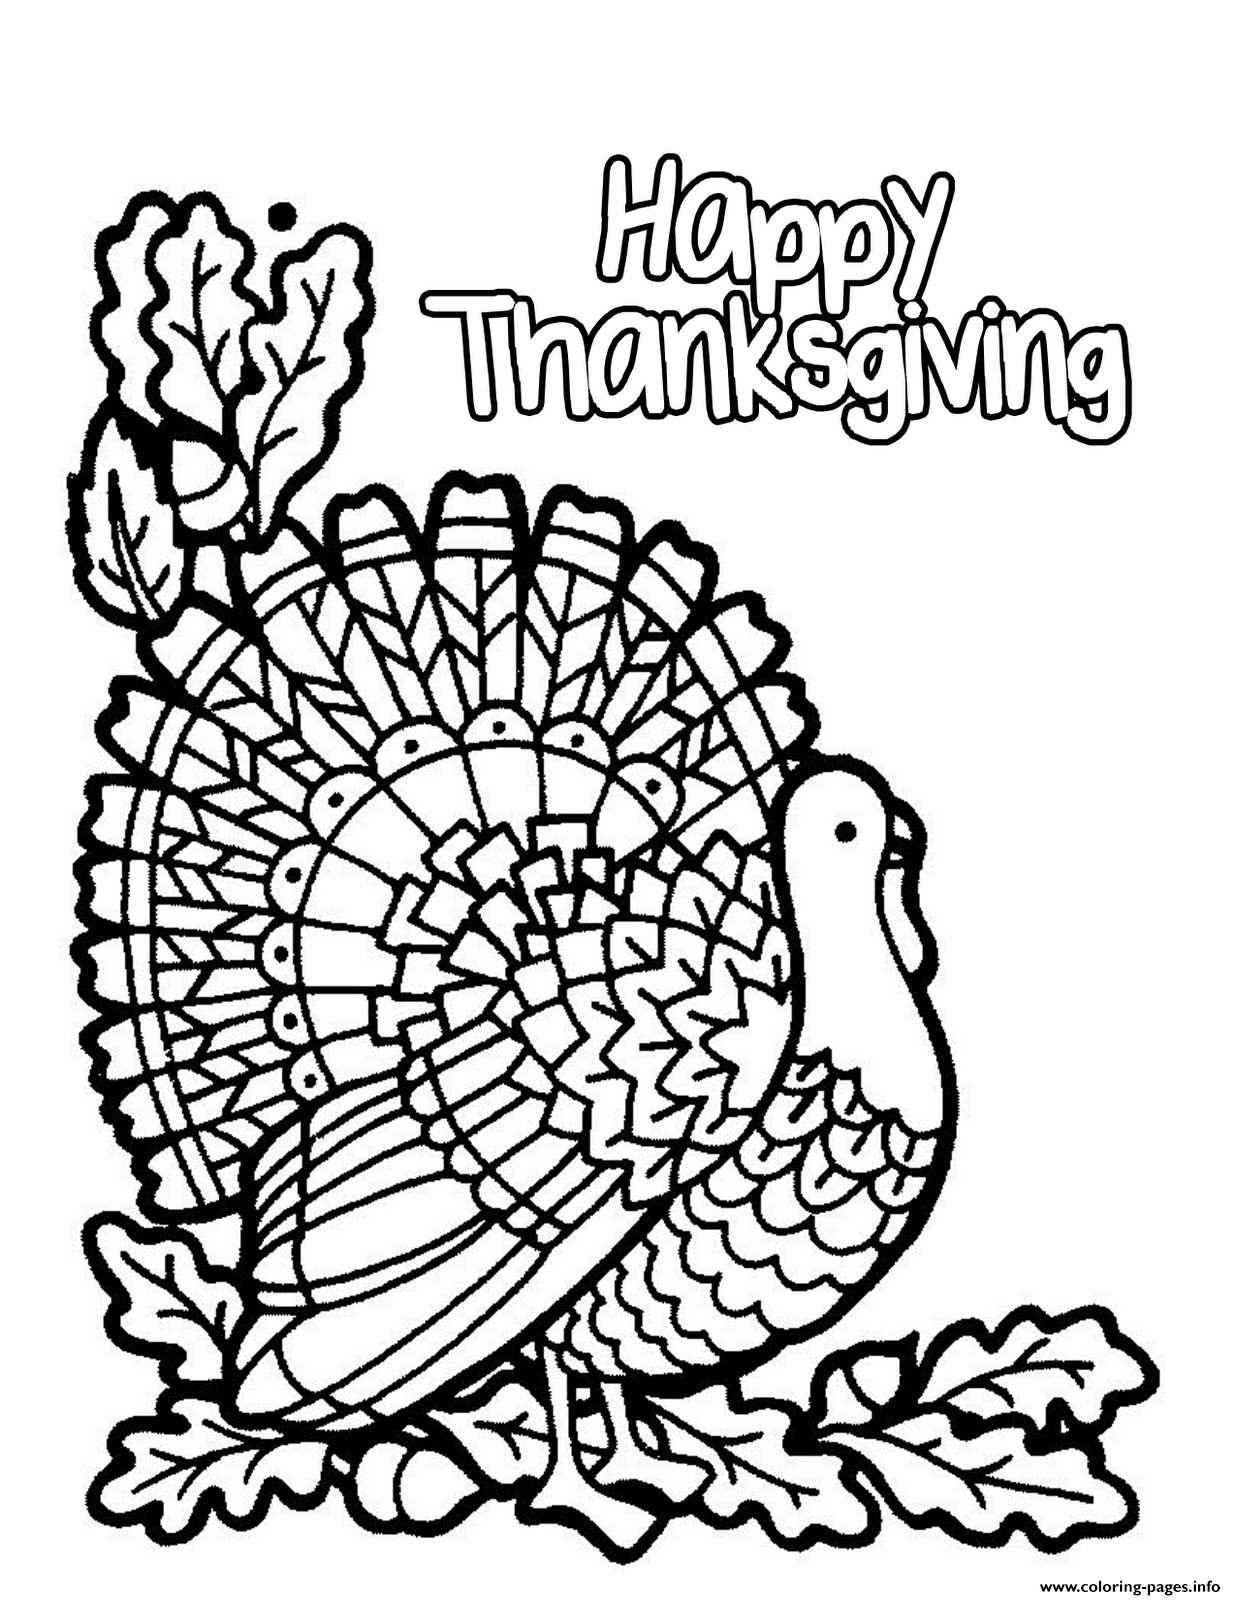 Turkey Happy Thanksgiving S To Printc461 Coloring Pages Printable